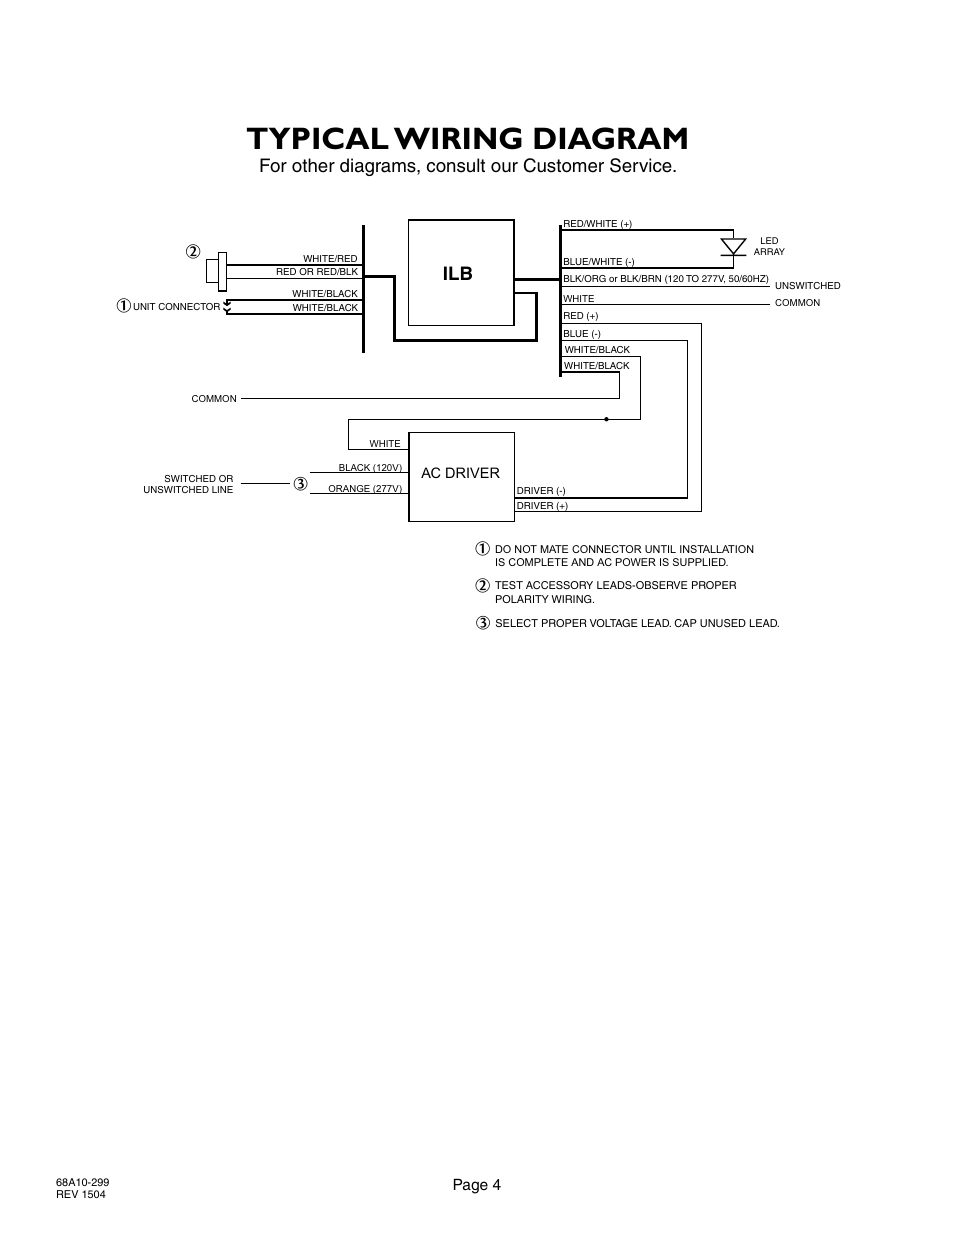 Typical Wiring Diagram  For Other Diagrams  Consult Our